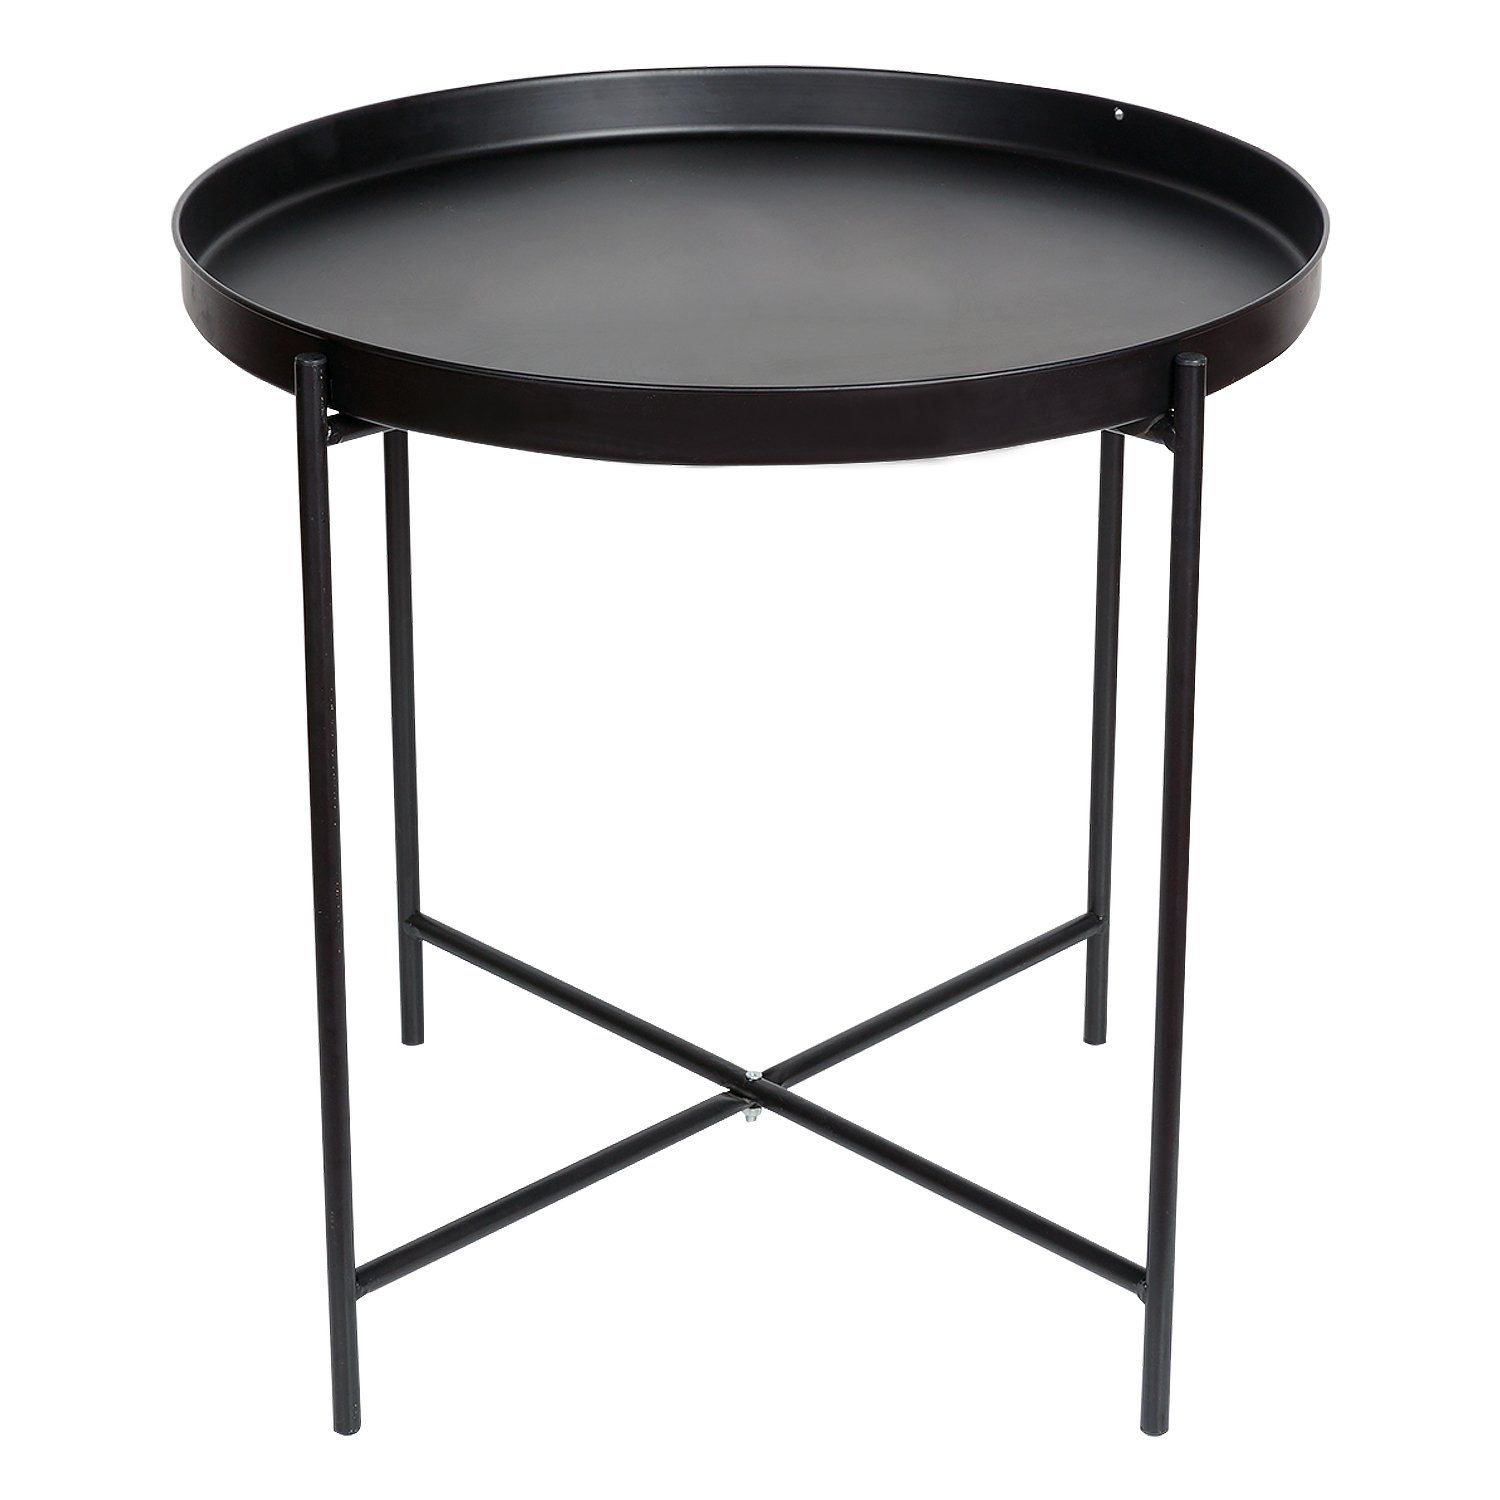 Hollyhome Folding Tray Metal End Table Black Can Be Used As Circle